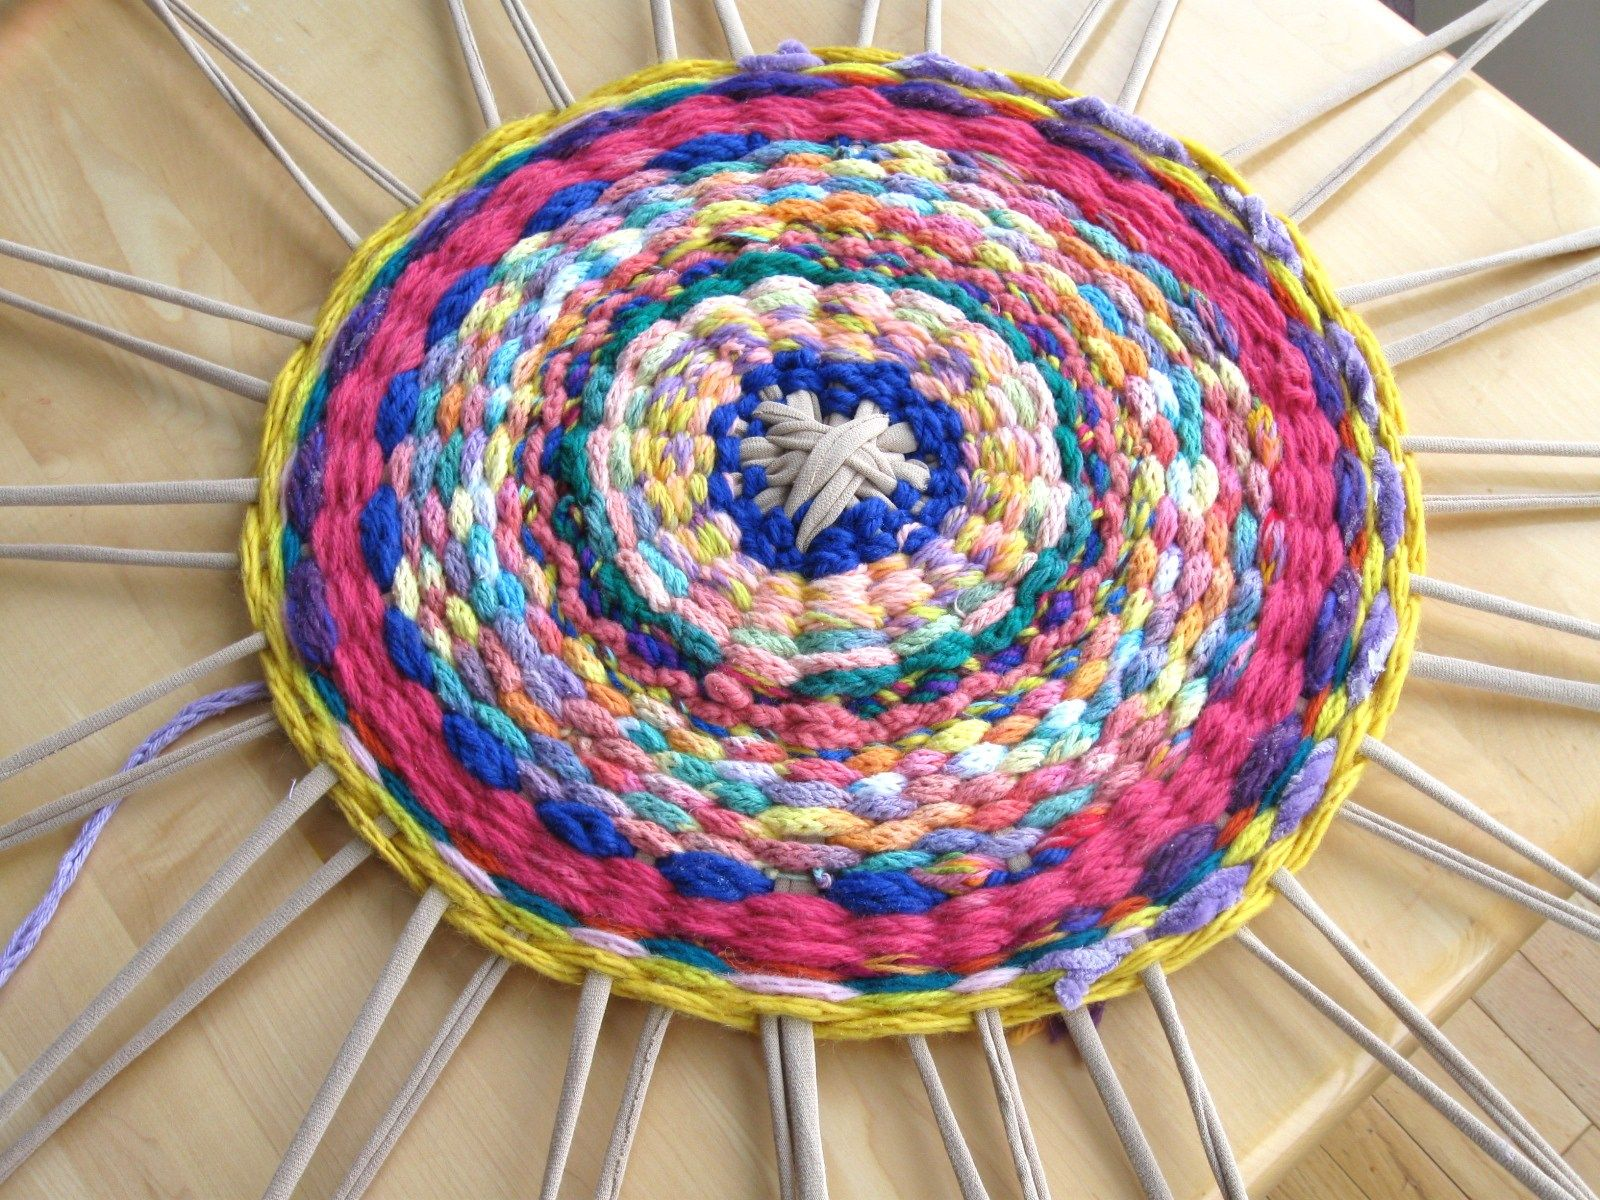 Woven Rug (or: What to do with all that finger knitting)